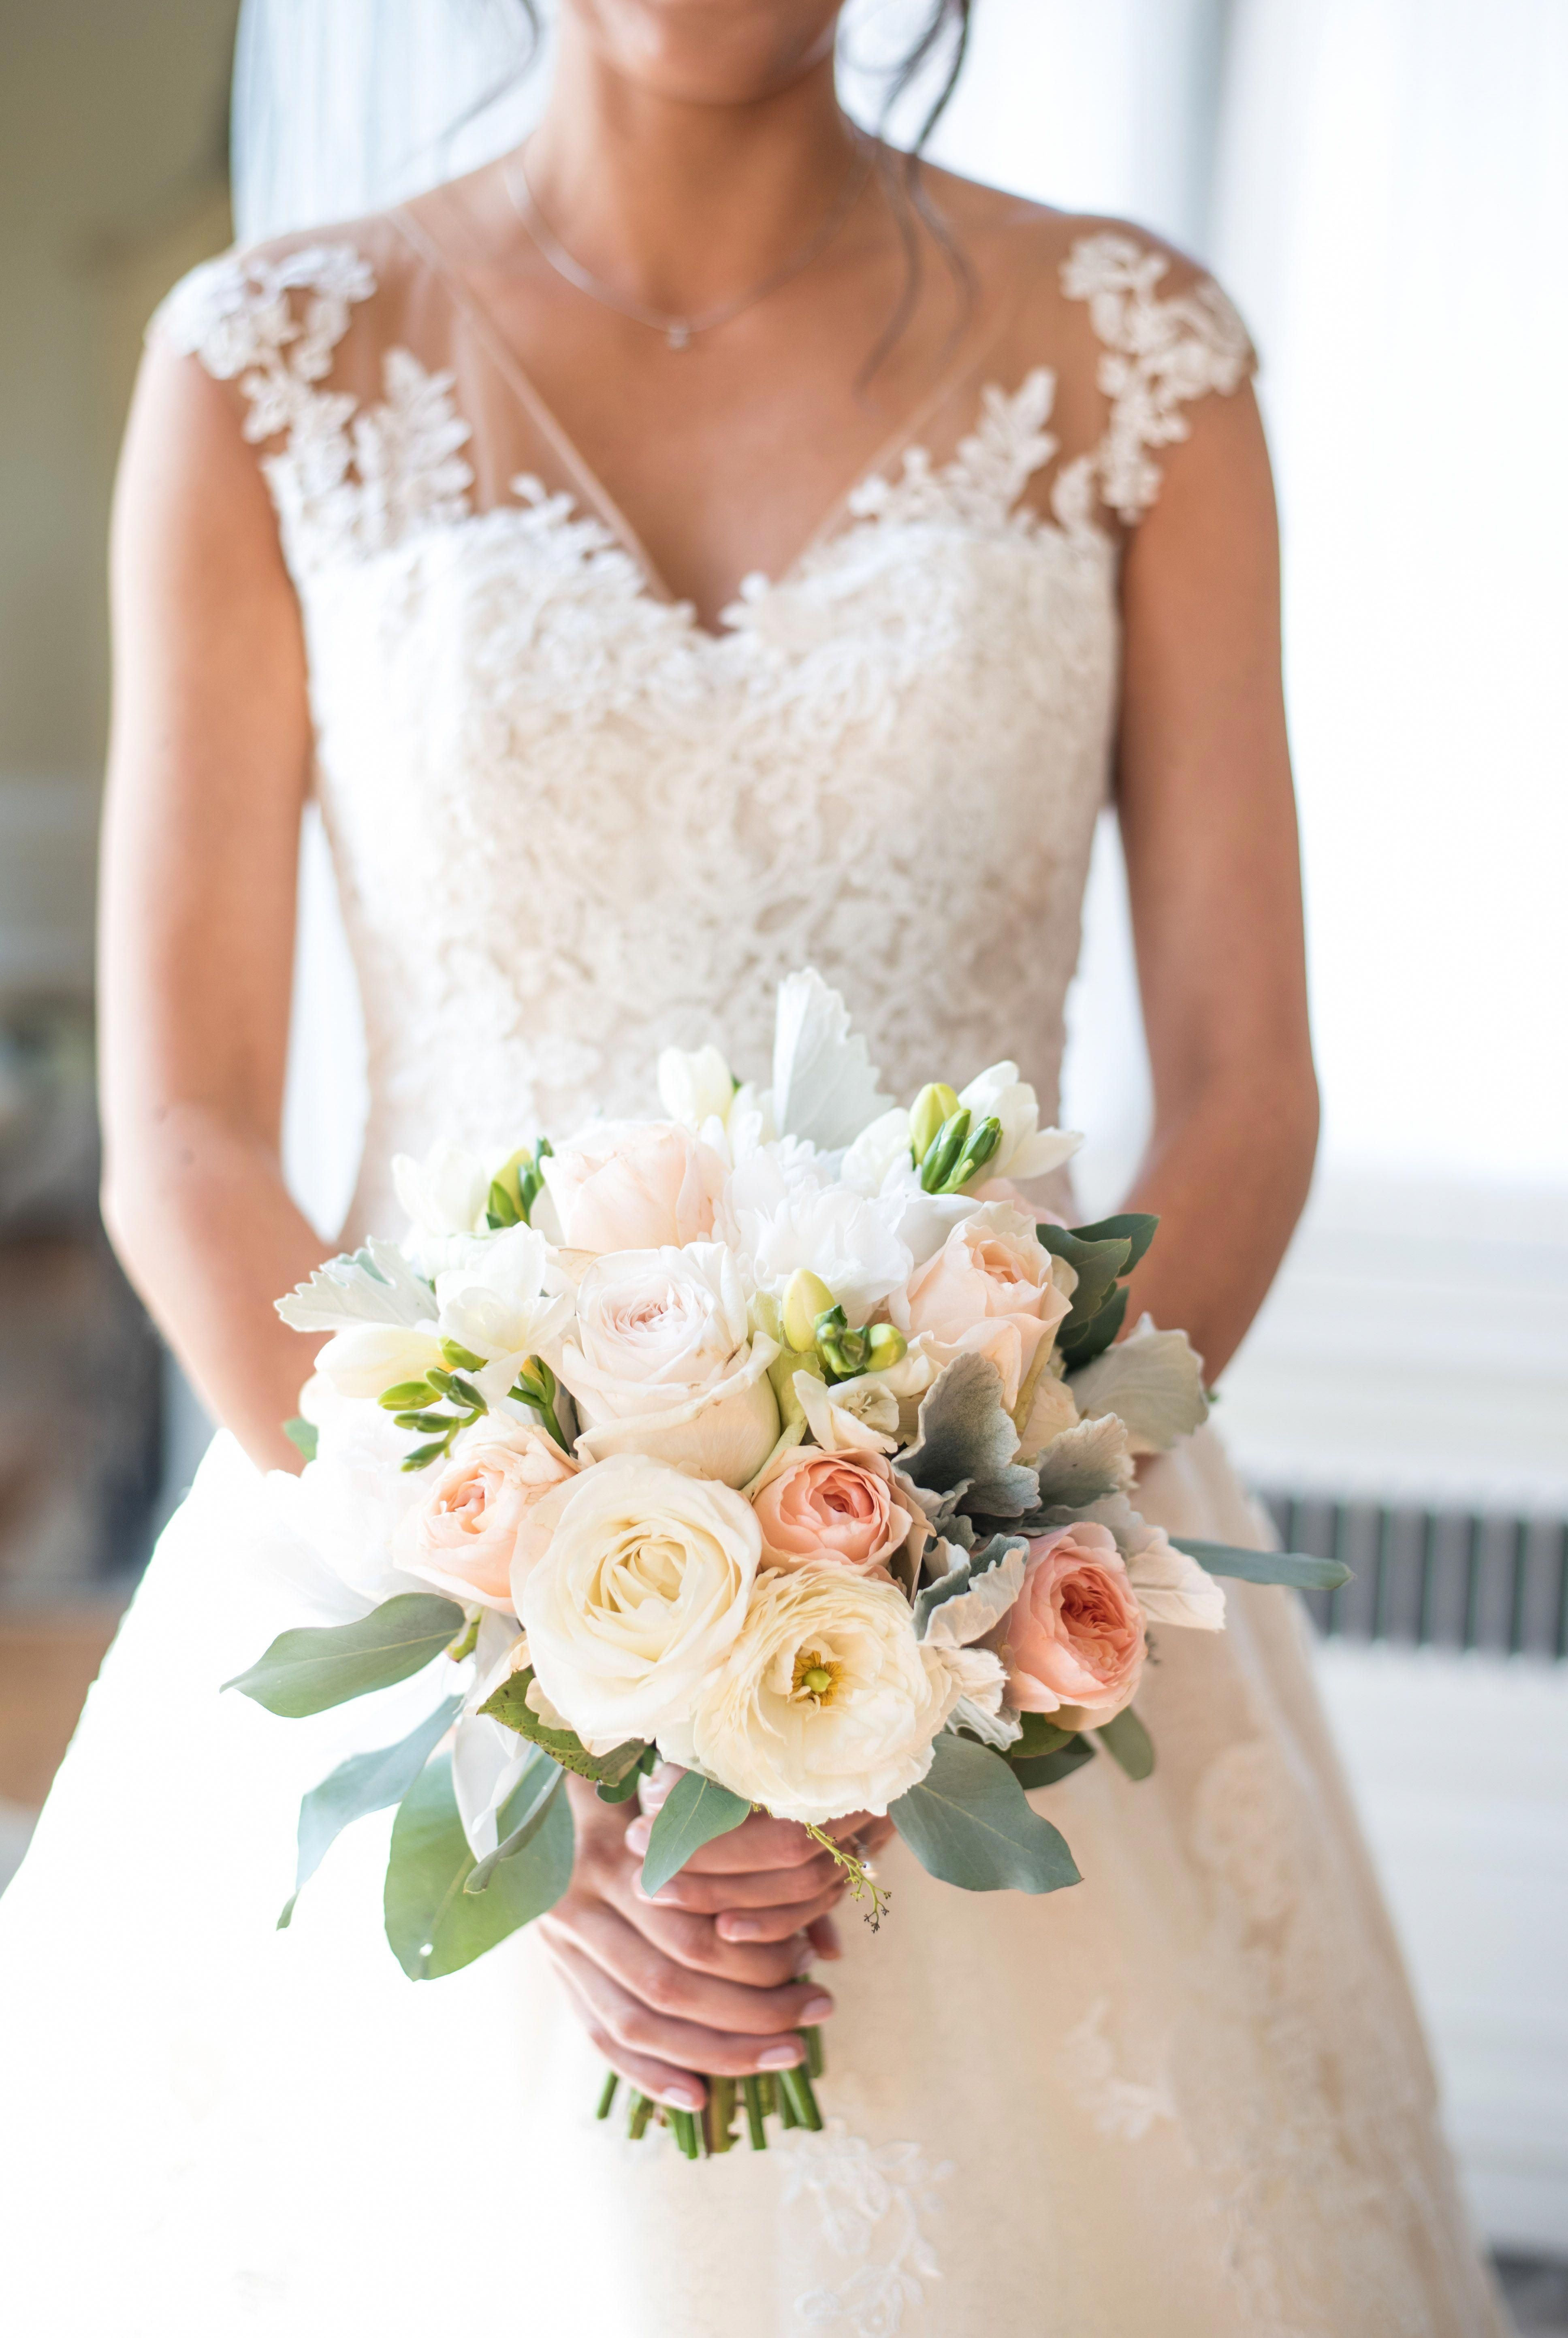 Pin By Leanna Perry On Bling Wedding In 2020 Bridal Bouquet